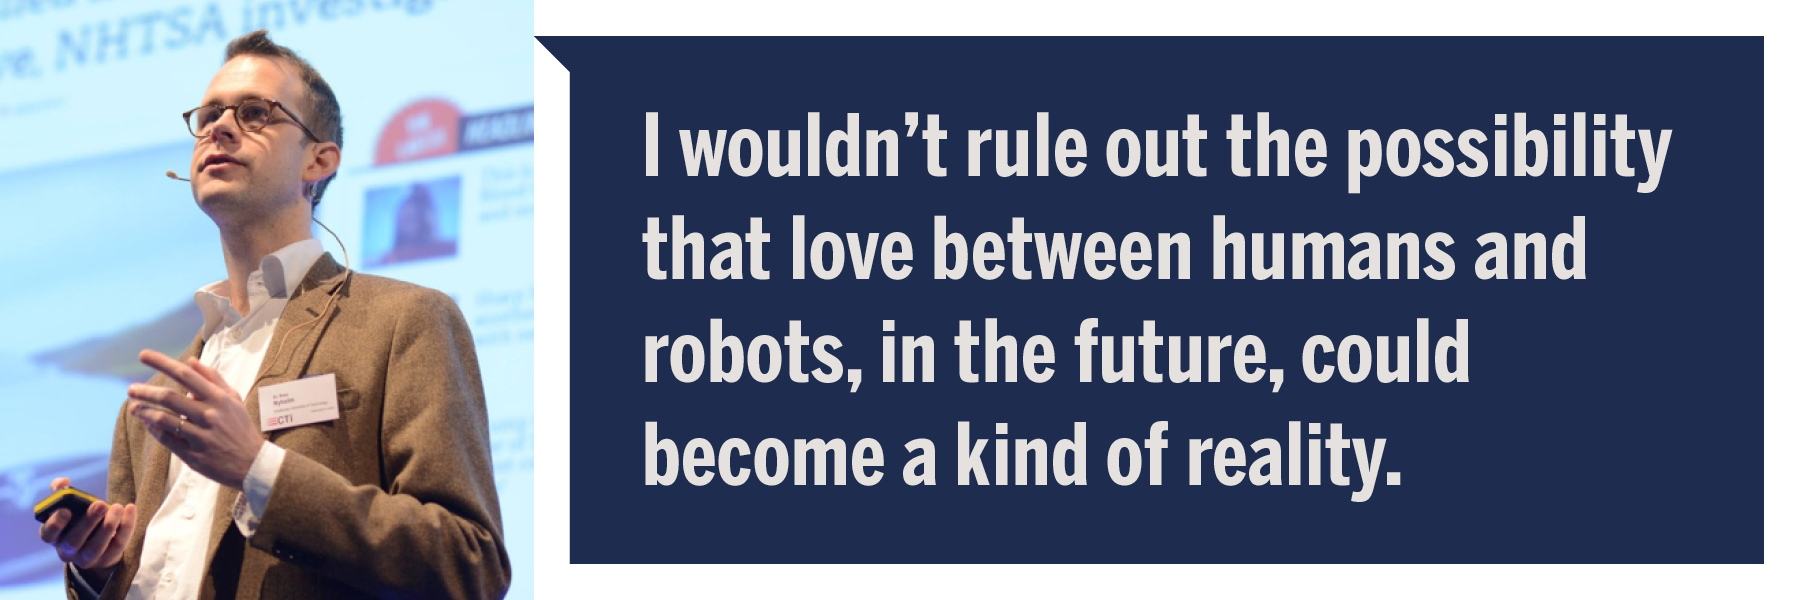 "Photo of Sven Nyholm with quote: ""I wouldn't rule out the possibility that love between humans and robots, in the future, could become a kind of reality."""